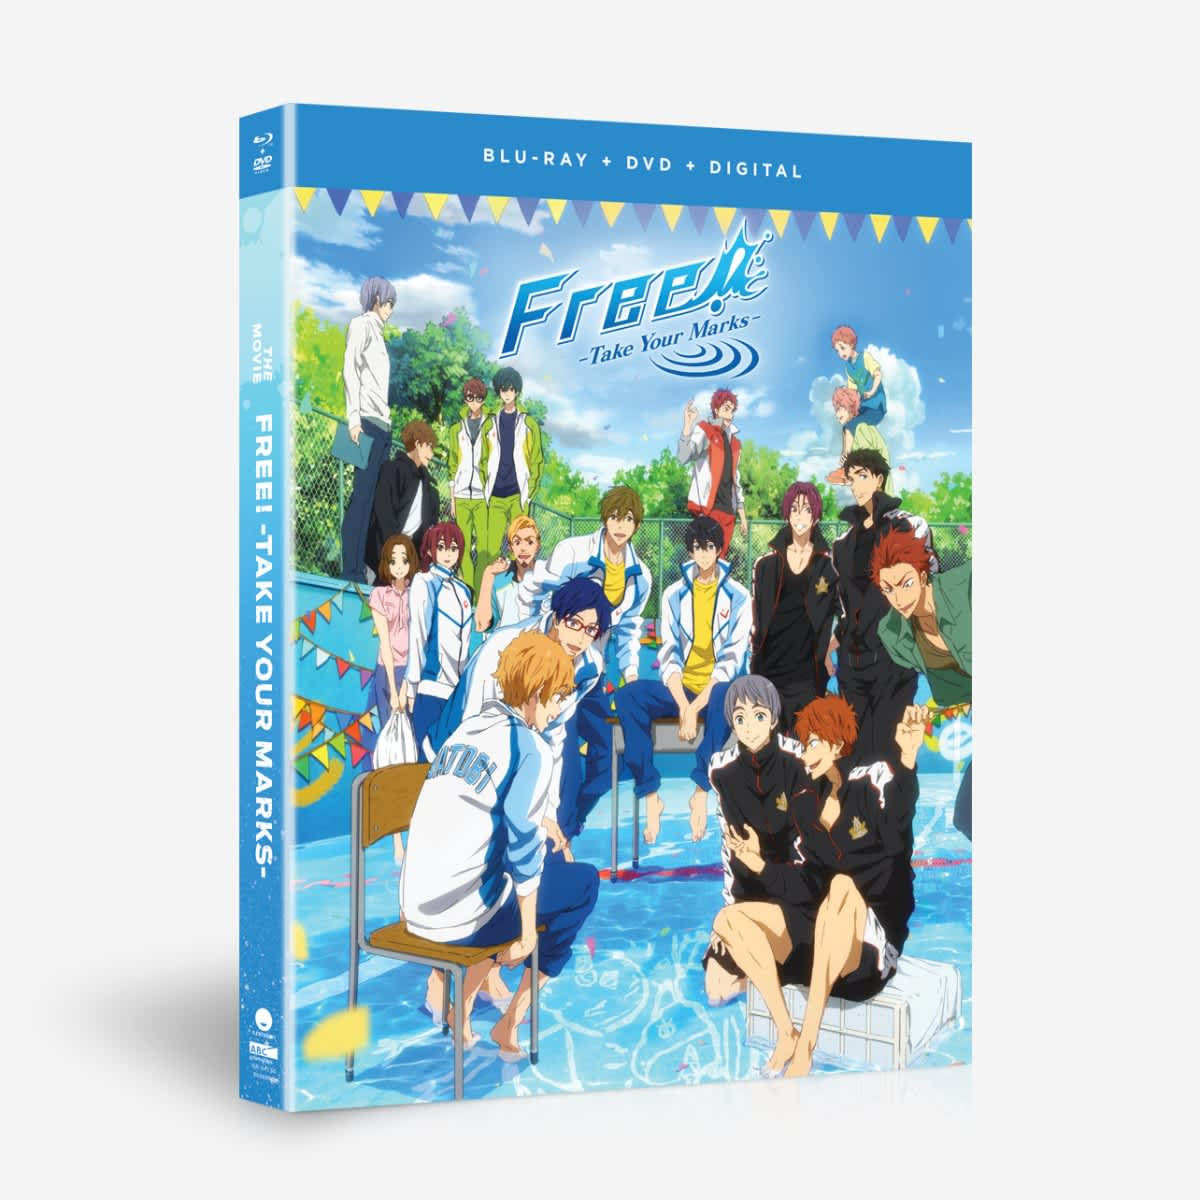 - Take Your Marks - BD/DVD Combo